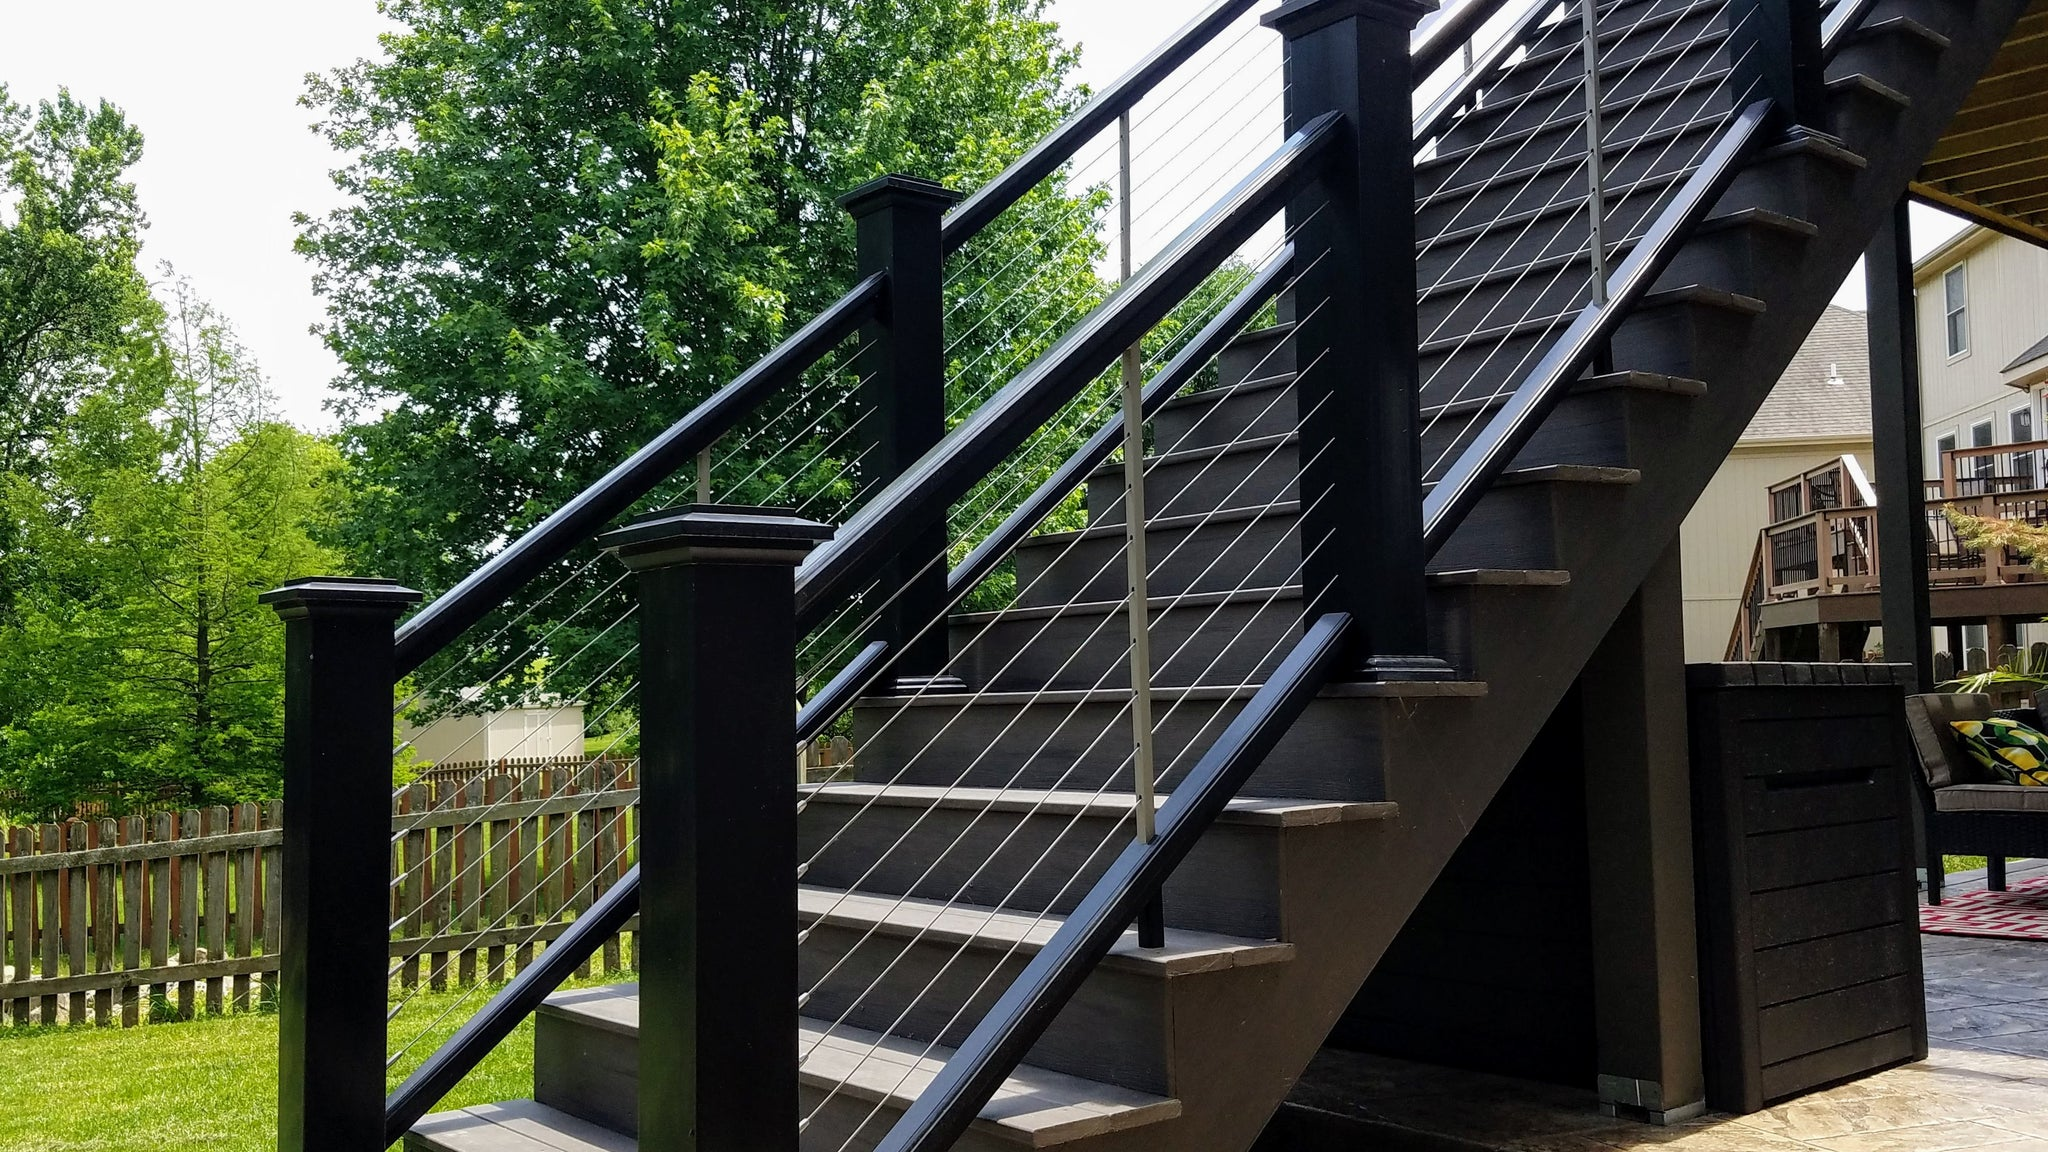 Composite Stairs with Cable on an angle using Azek Rail and TimberTech Decking with Feeney Cable